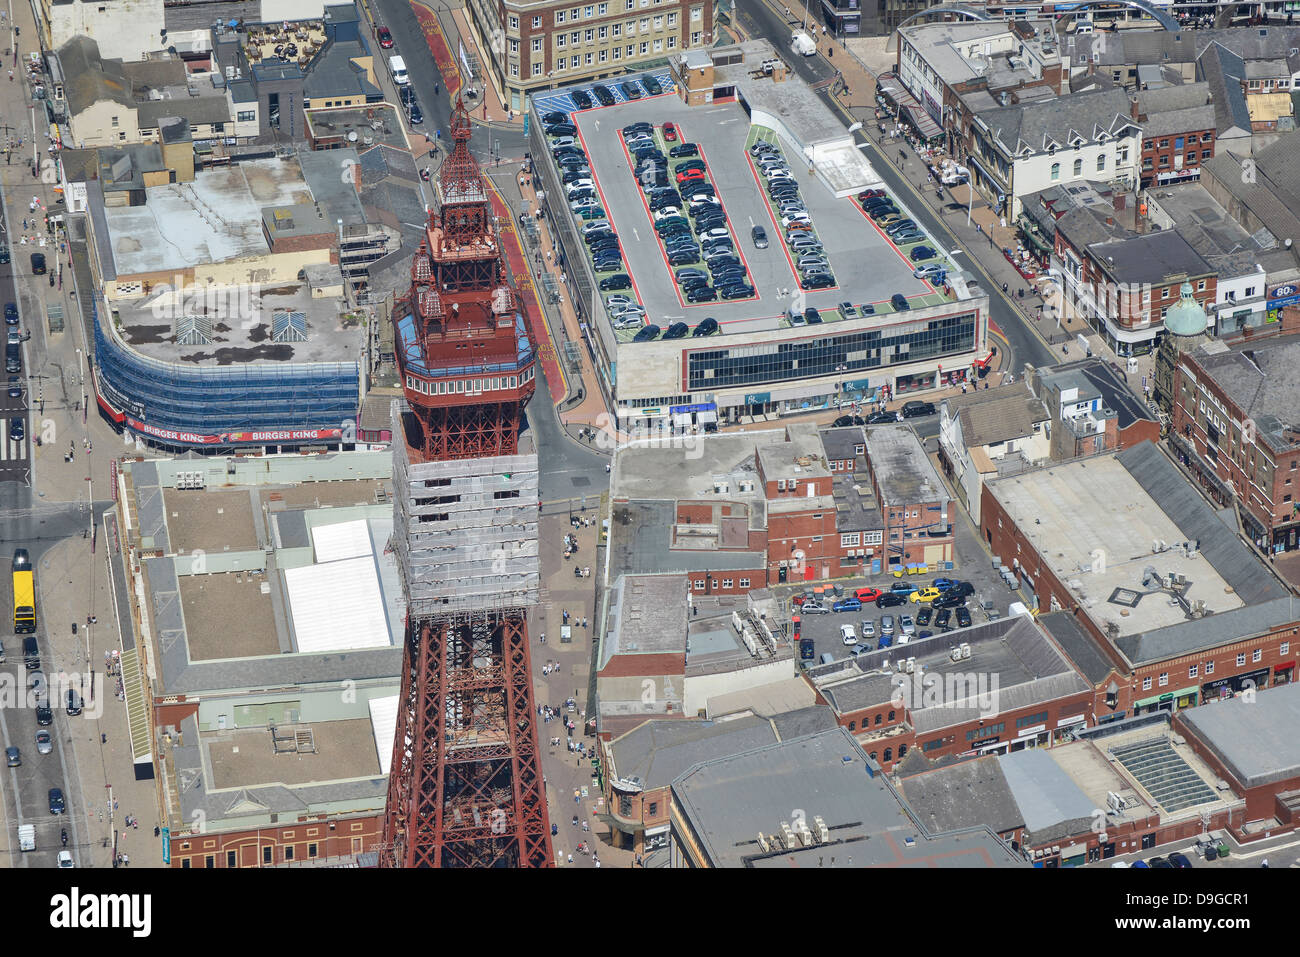 Aerial photograph of Blackpool Tower and Hounds Hill Shopping Centre - Stock Image